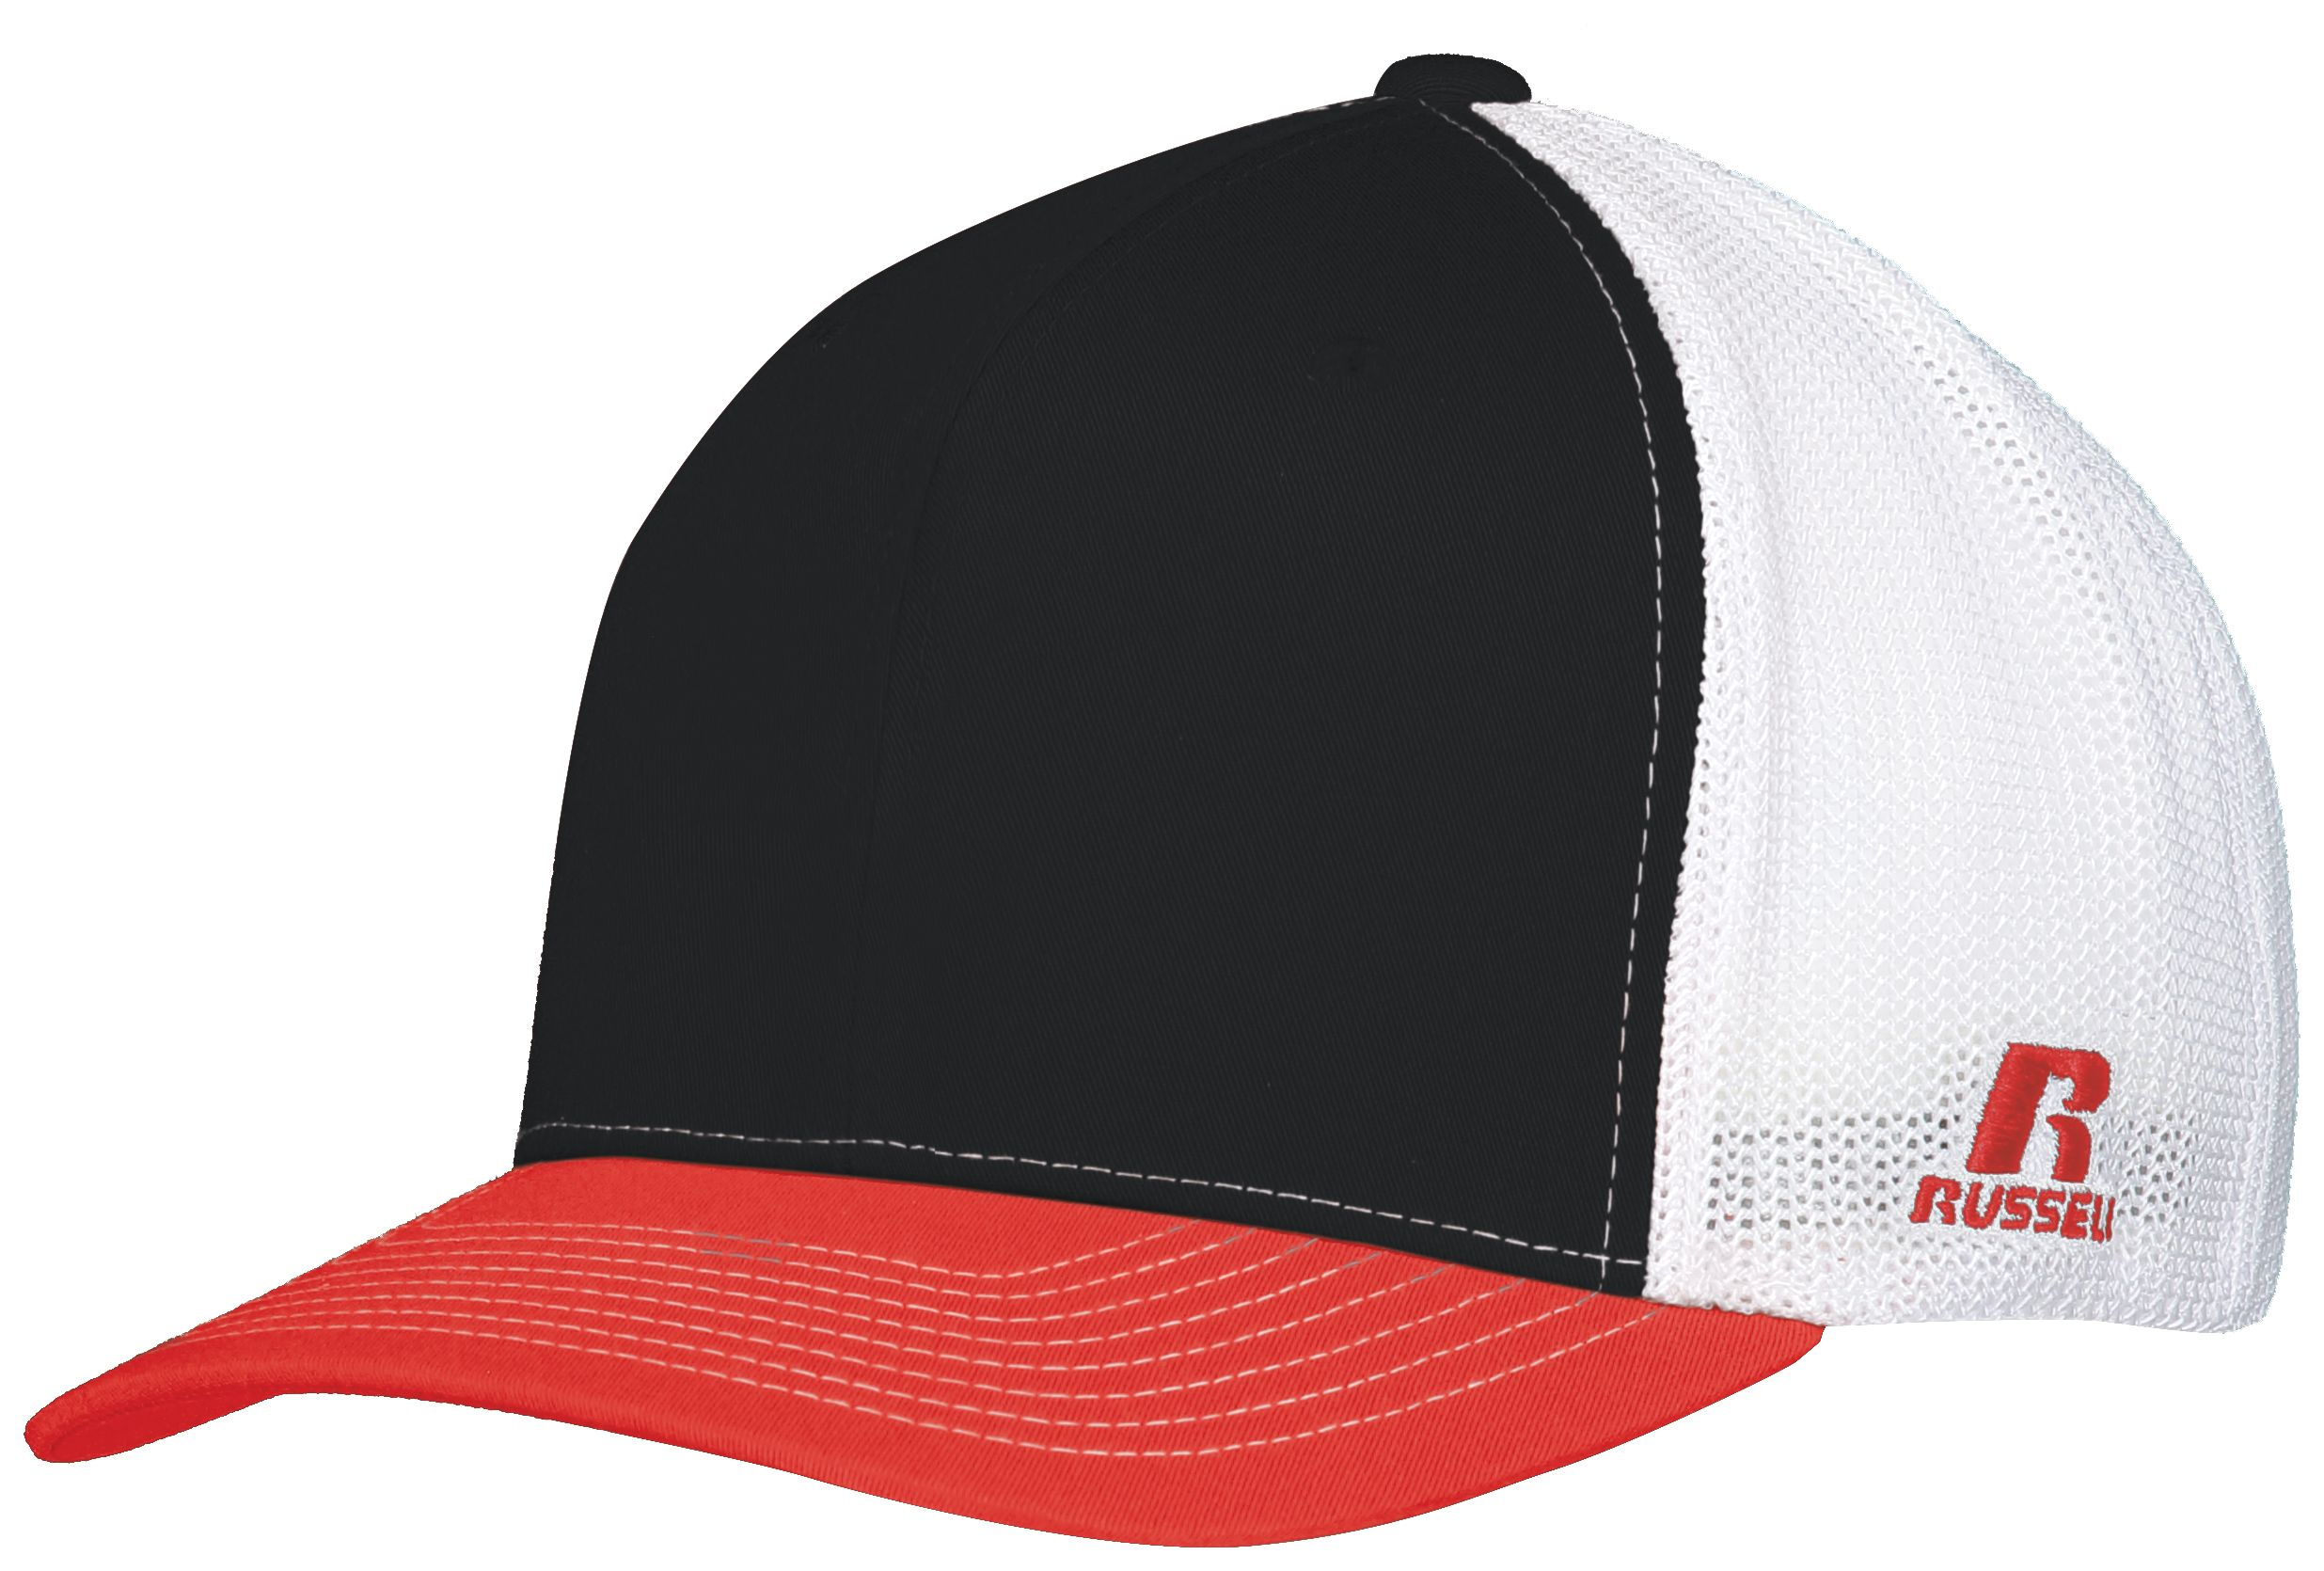 Youth Flexfit Twill Mesh Cap - Black/true Red/white